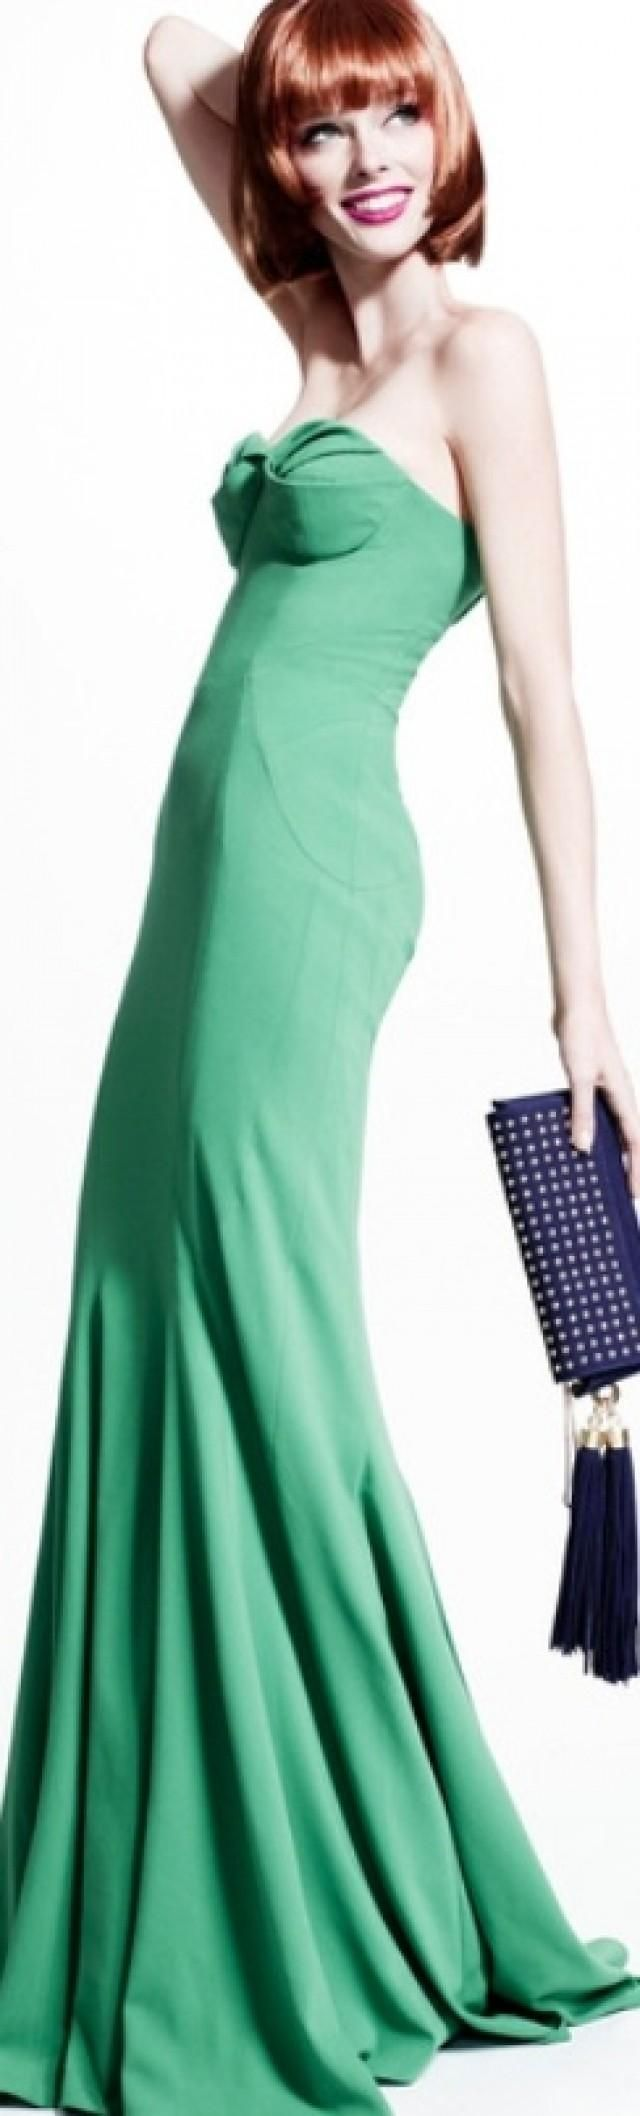 Zac Posen Resort 2014 green